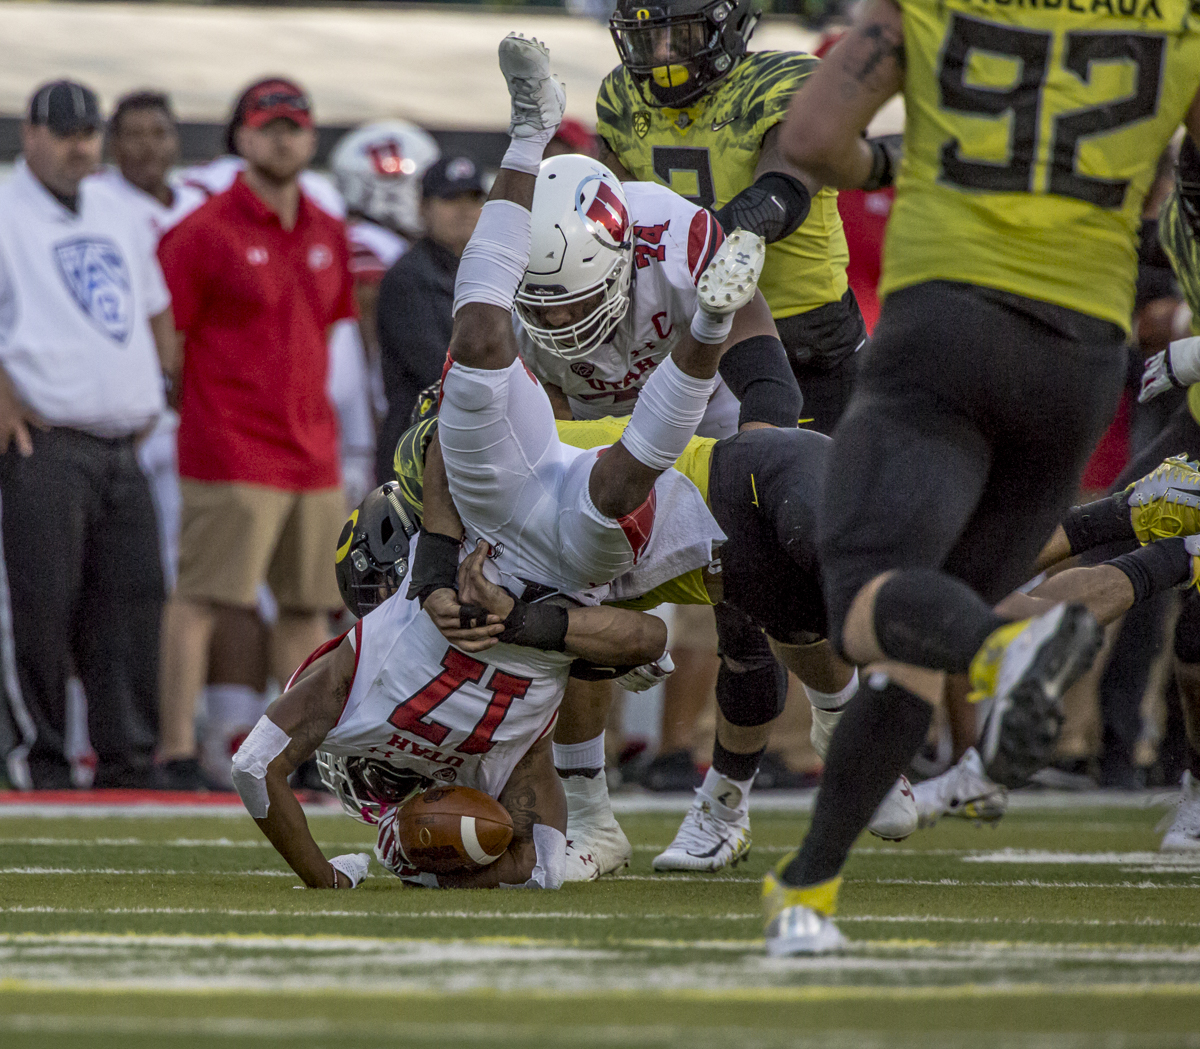 An Oregon defender brings down Utah wide receiver Demari Simpkins (#17). The Oregon Ducks defeated the Utah Utes 41 to 20 during Oregon's homecoming game at Autzen Stadium on Saturday, October 28, 2017. Photo by Ben Lonergan, Oregon News Lab